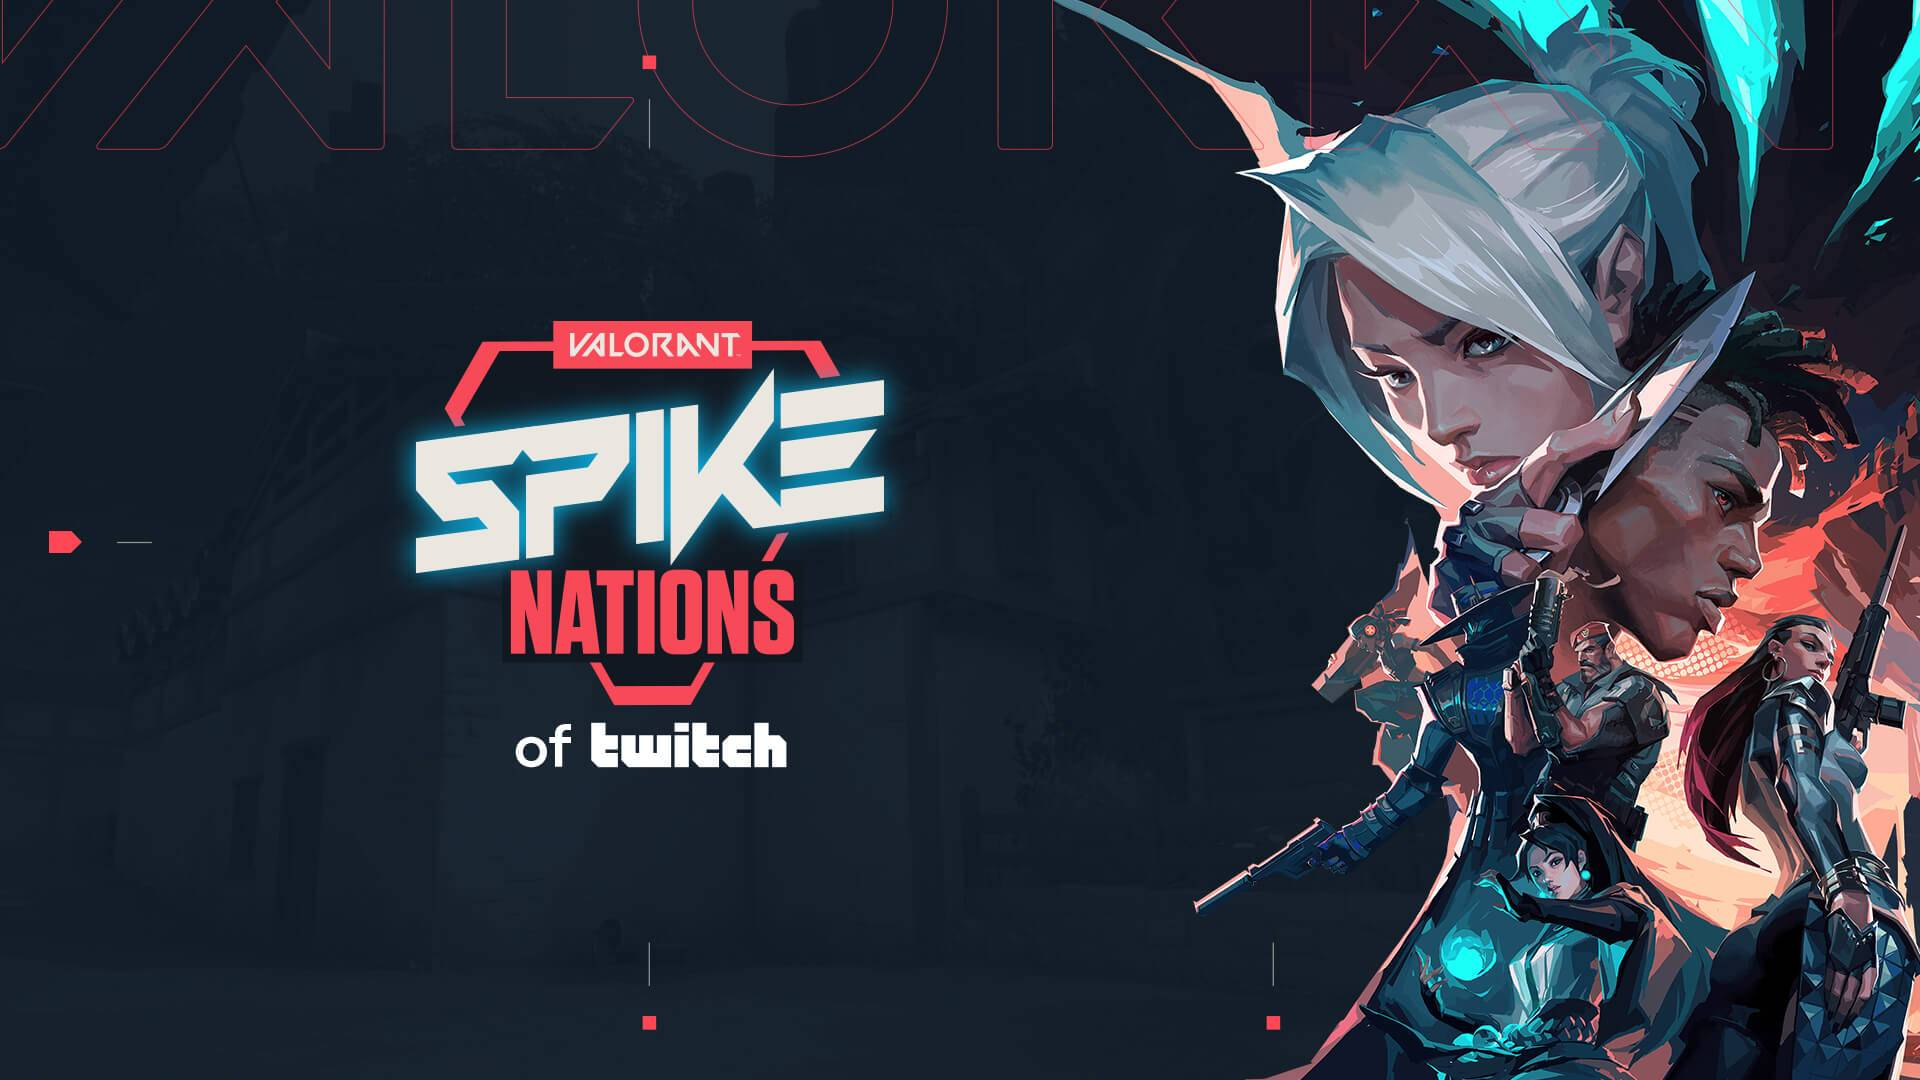 twitch spike nations valorant